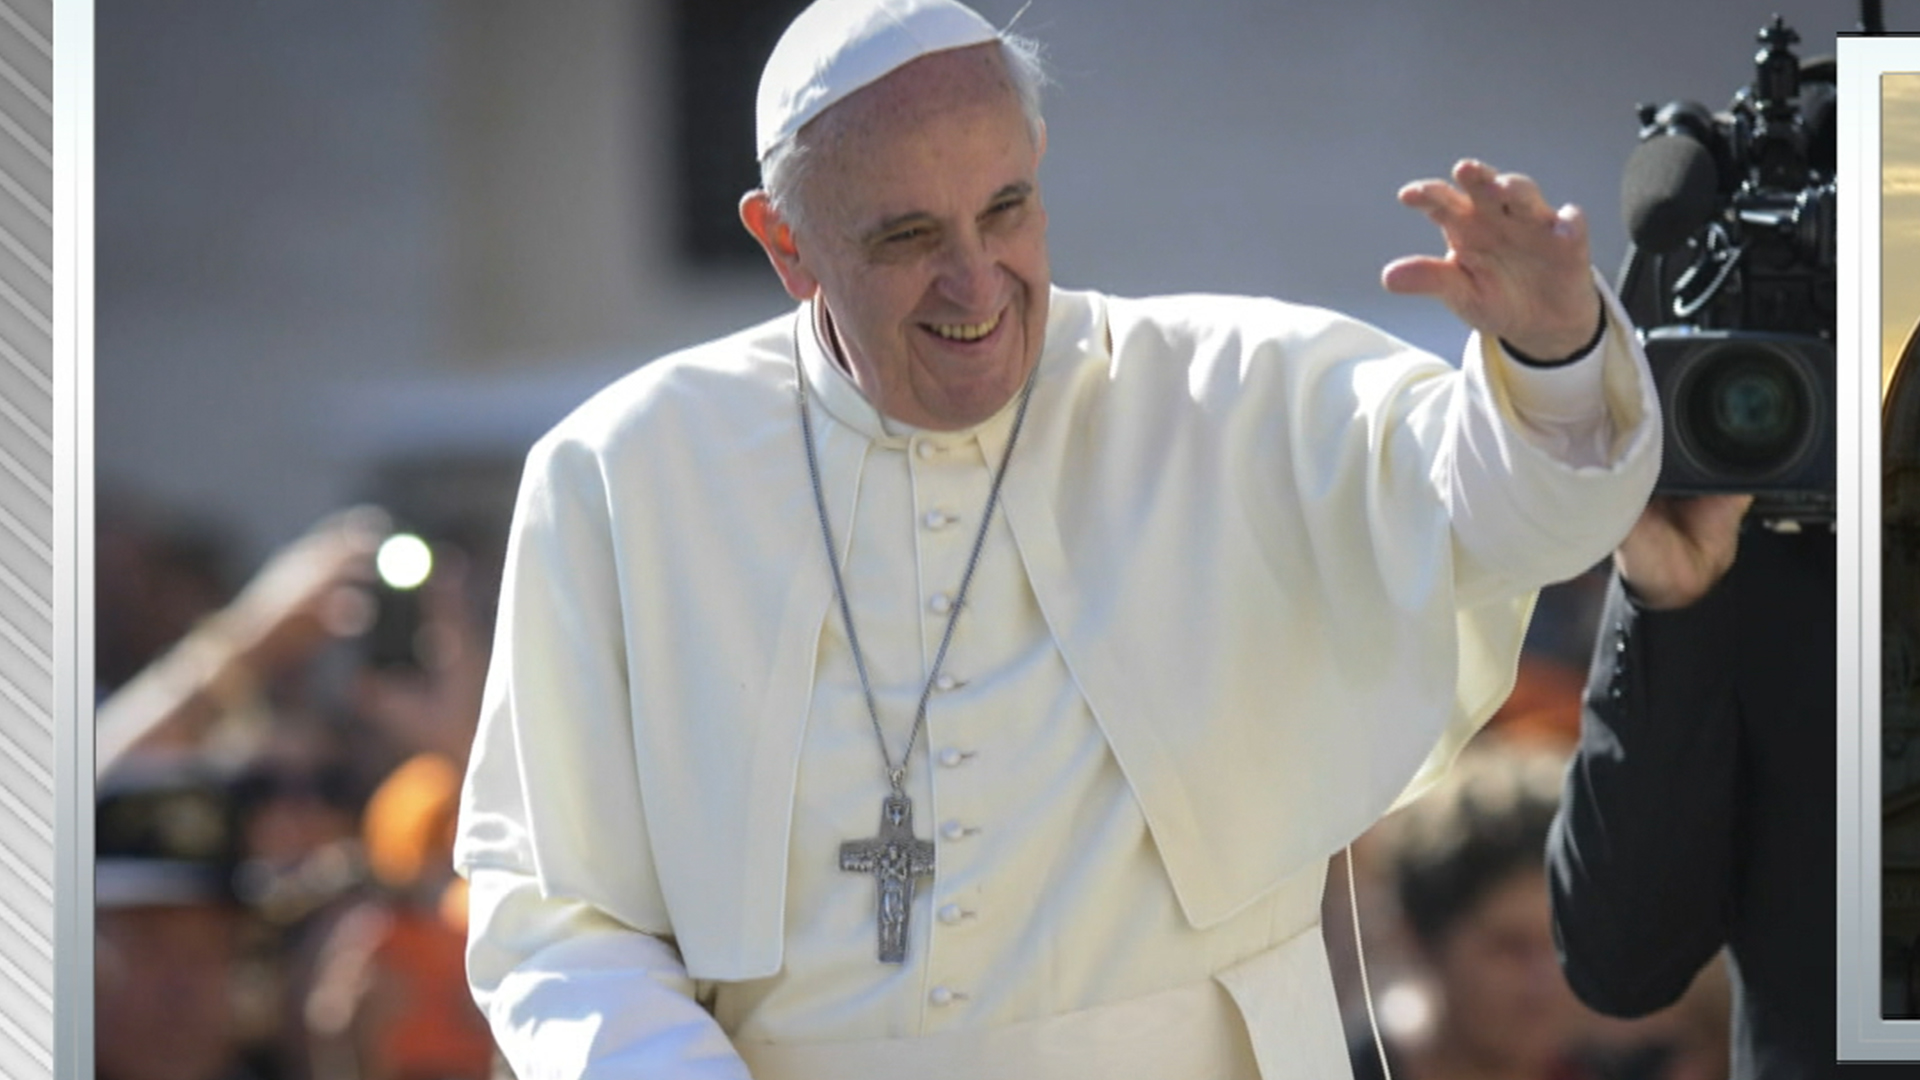 Pope Francis comments fire up some Catholics